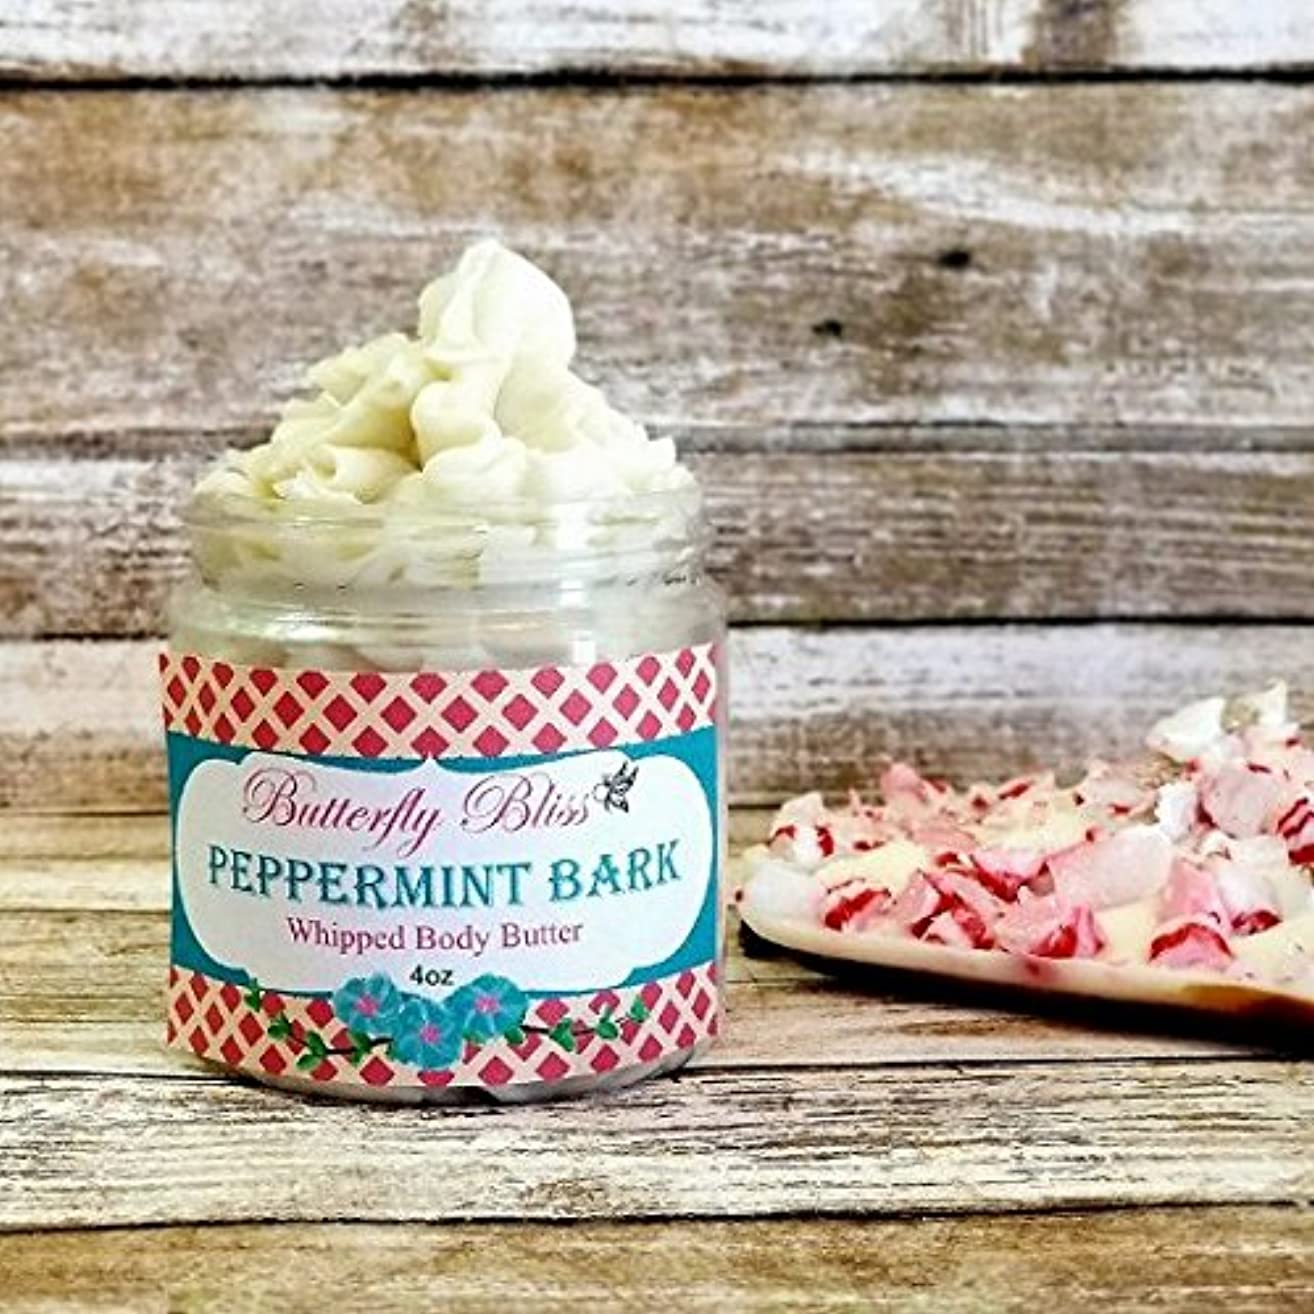 Peppermint Bark Whipped Body Butter, natural lotion, organic, 4oz jar, made with shea butter, mango butter, coconut oil, almond oil